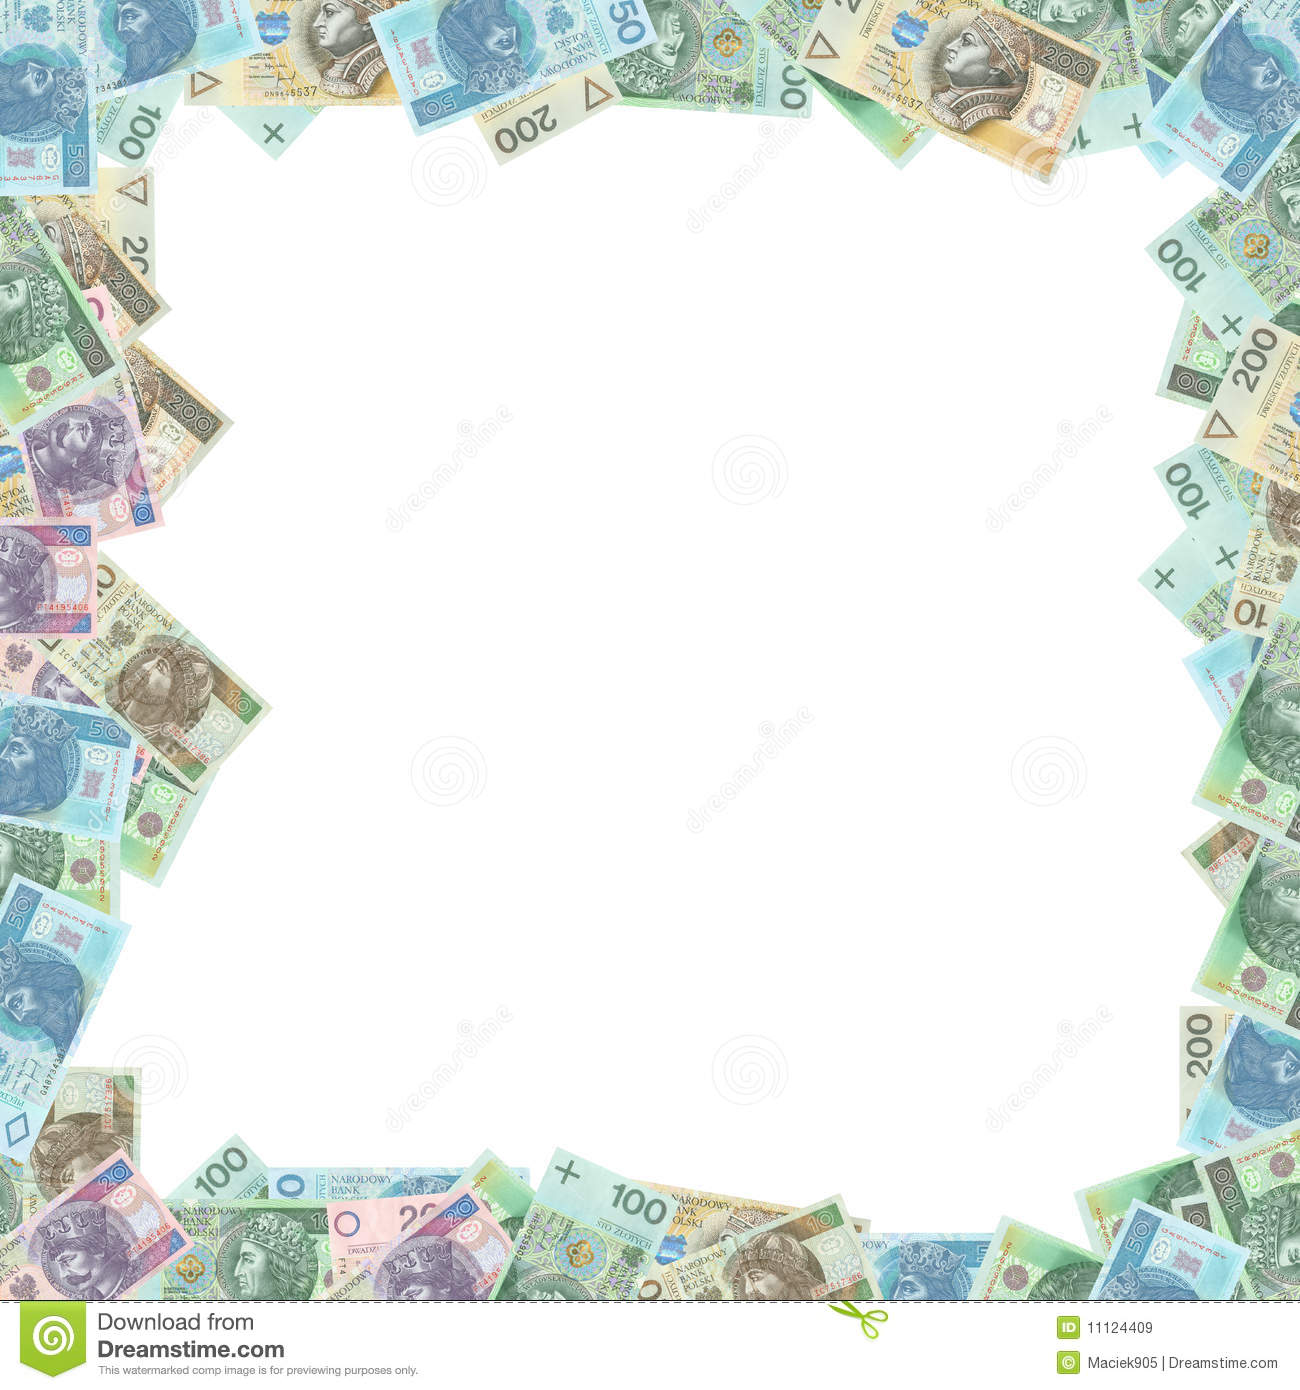 Polish money frame WITH CLIPPING PATCH